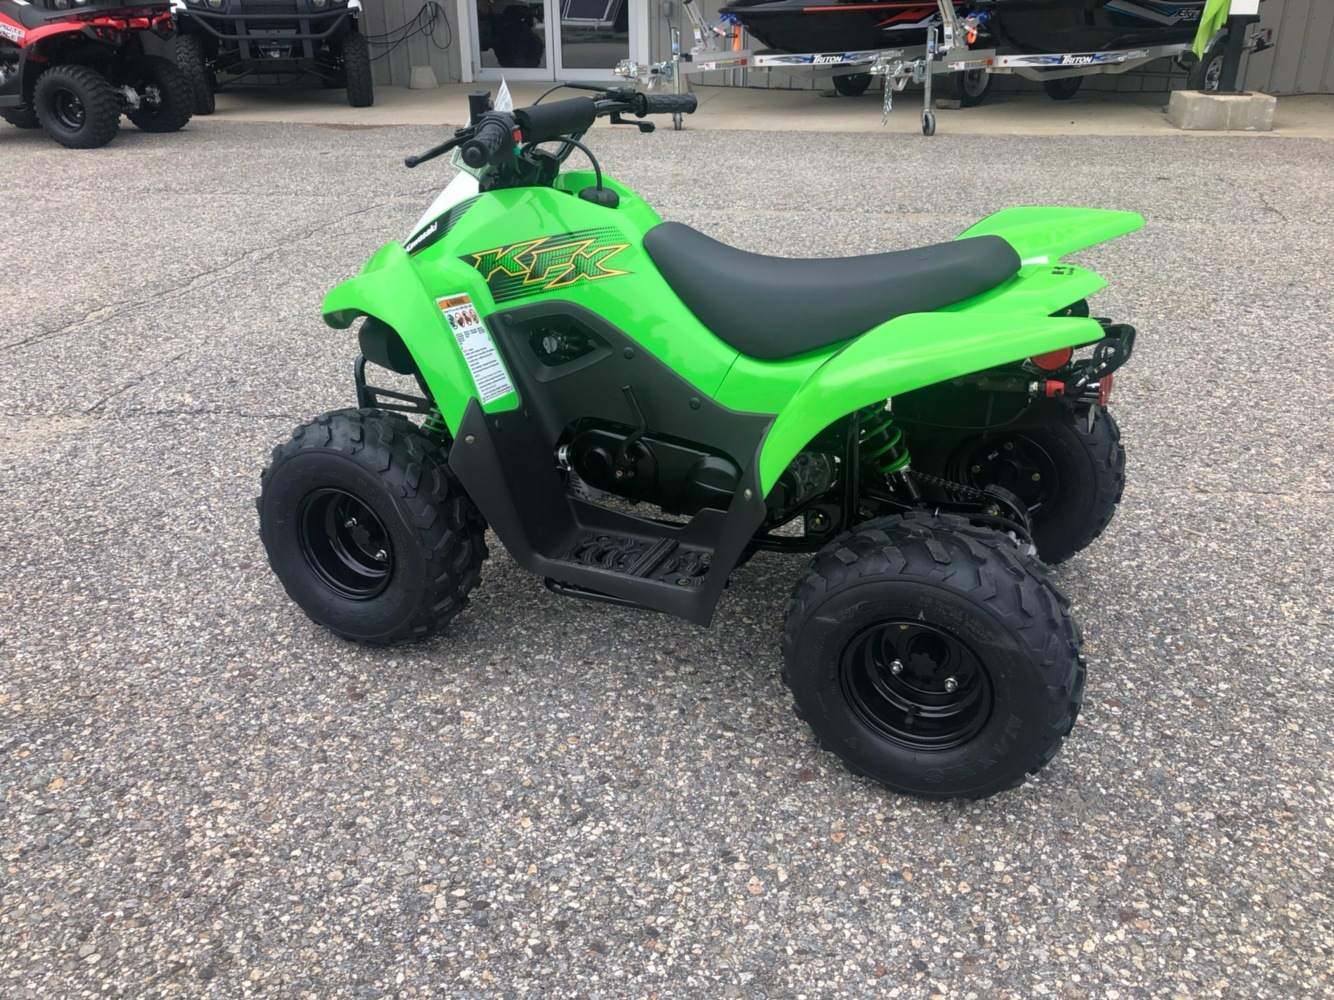 2020 Kawasaki KFX 50 in Lebanon, Maine - Photo 4